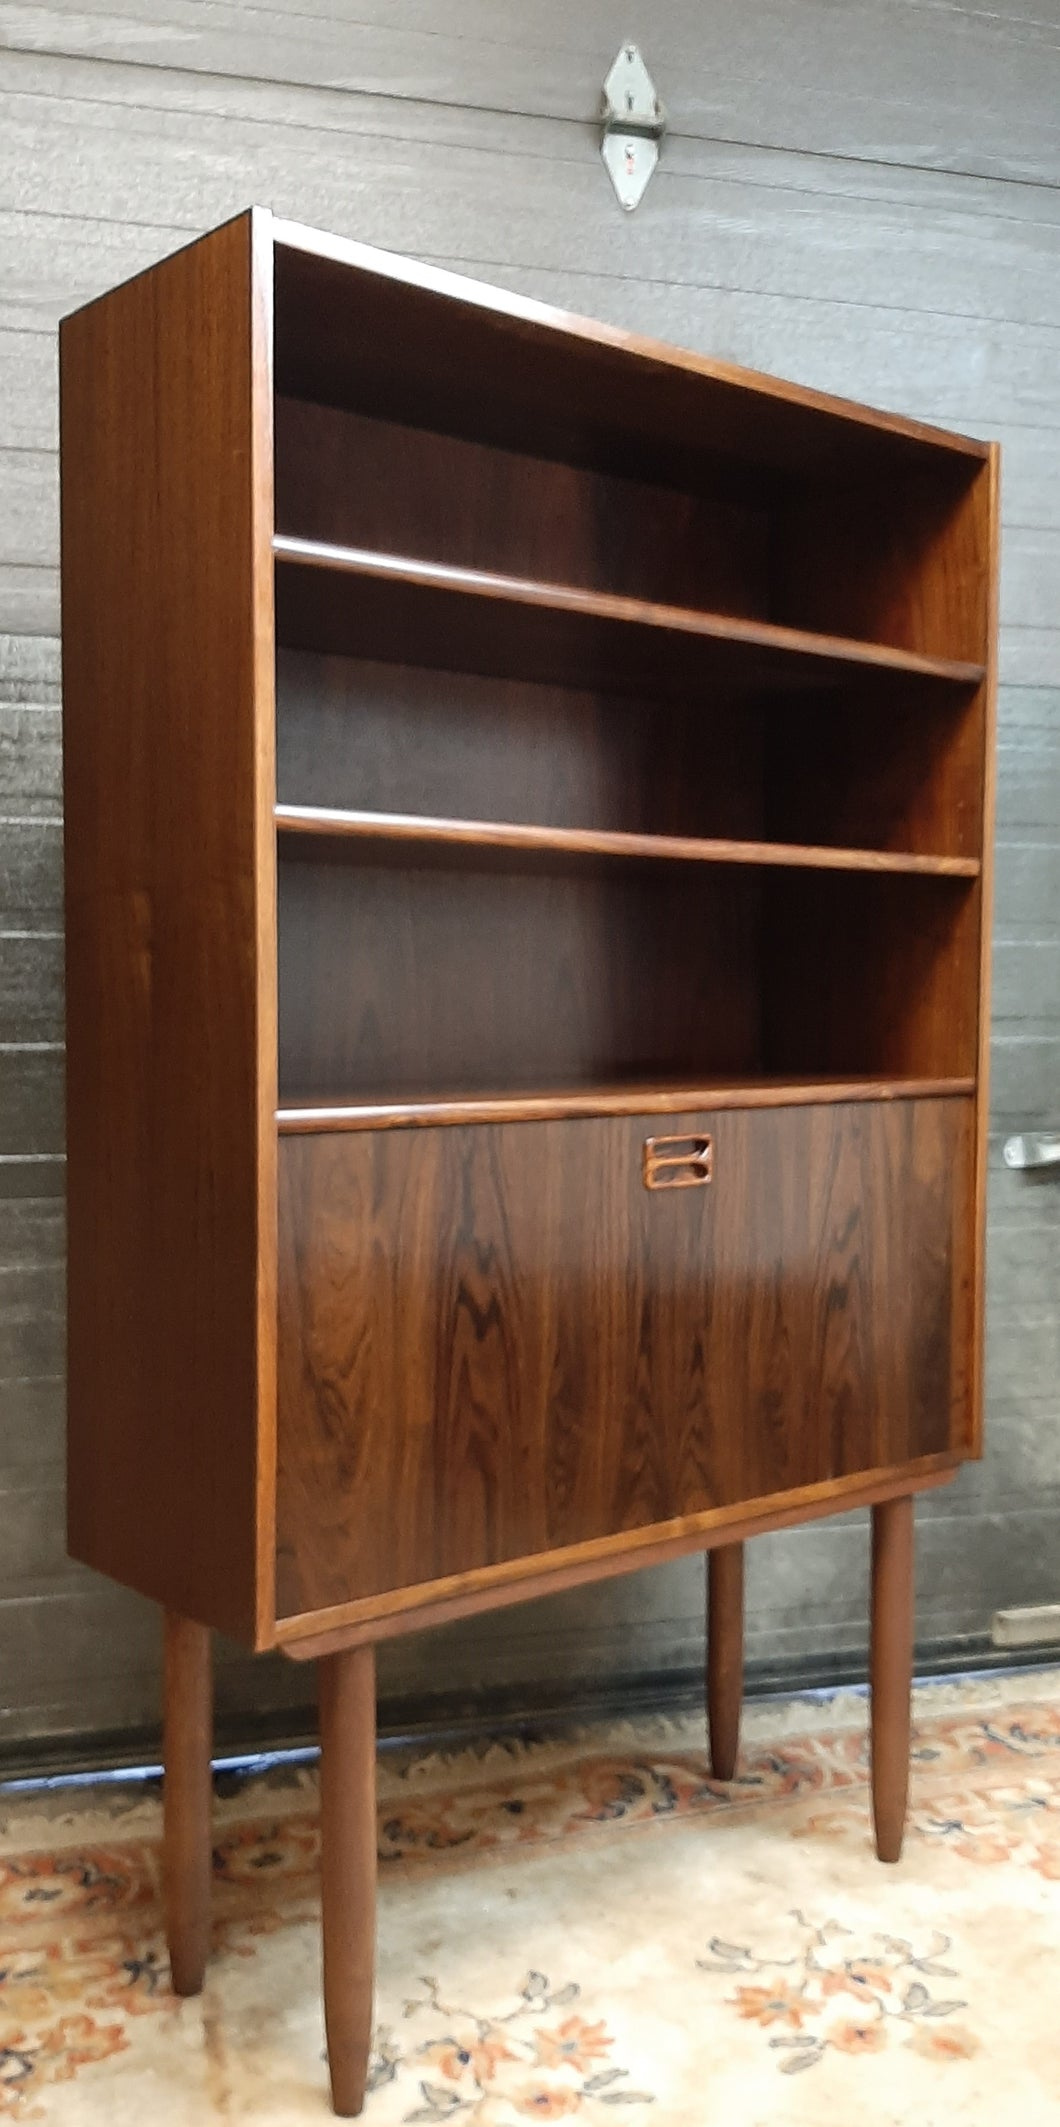 RESTORED Danish MCM Rosewood Bar Display Bookcase, narrow 34